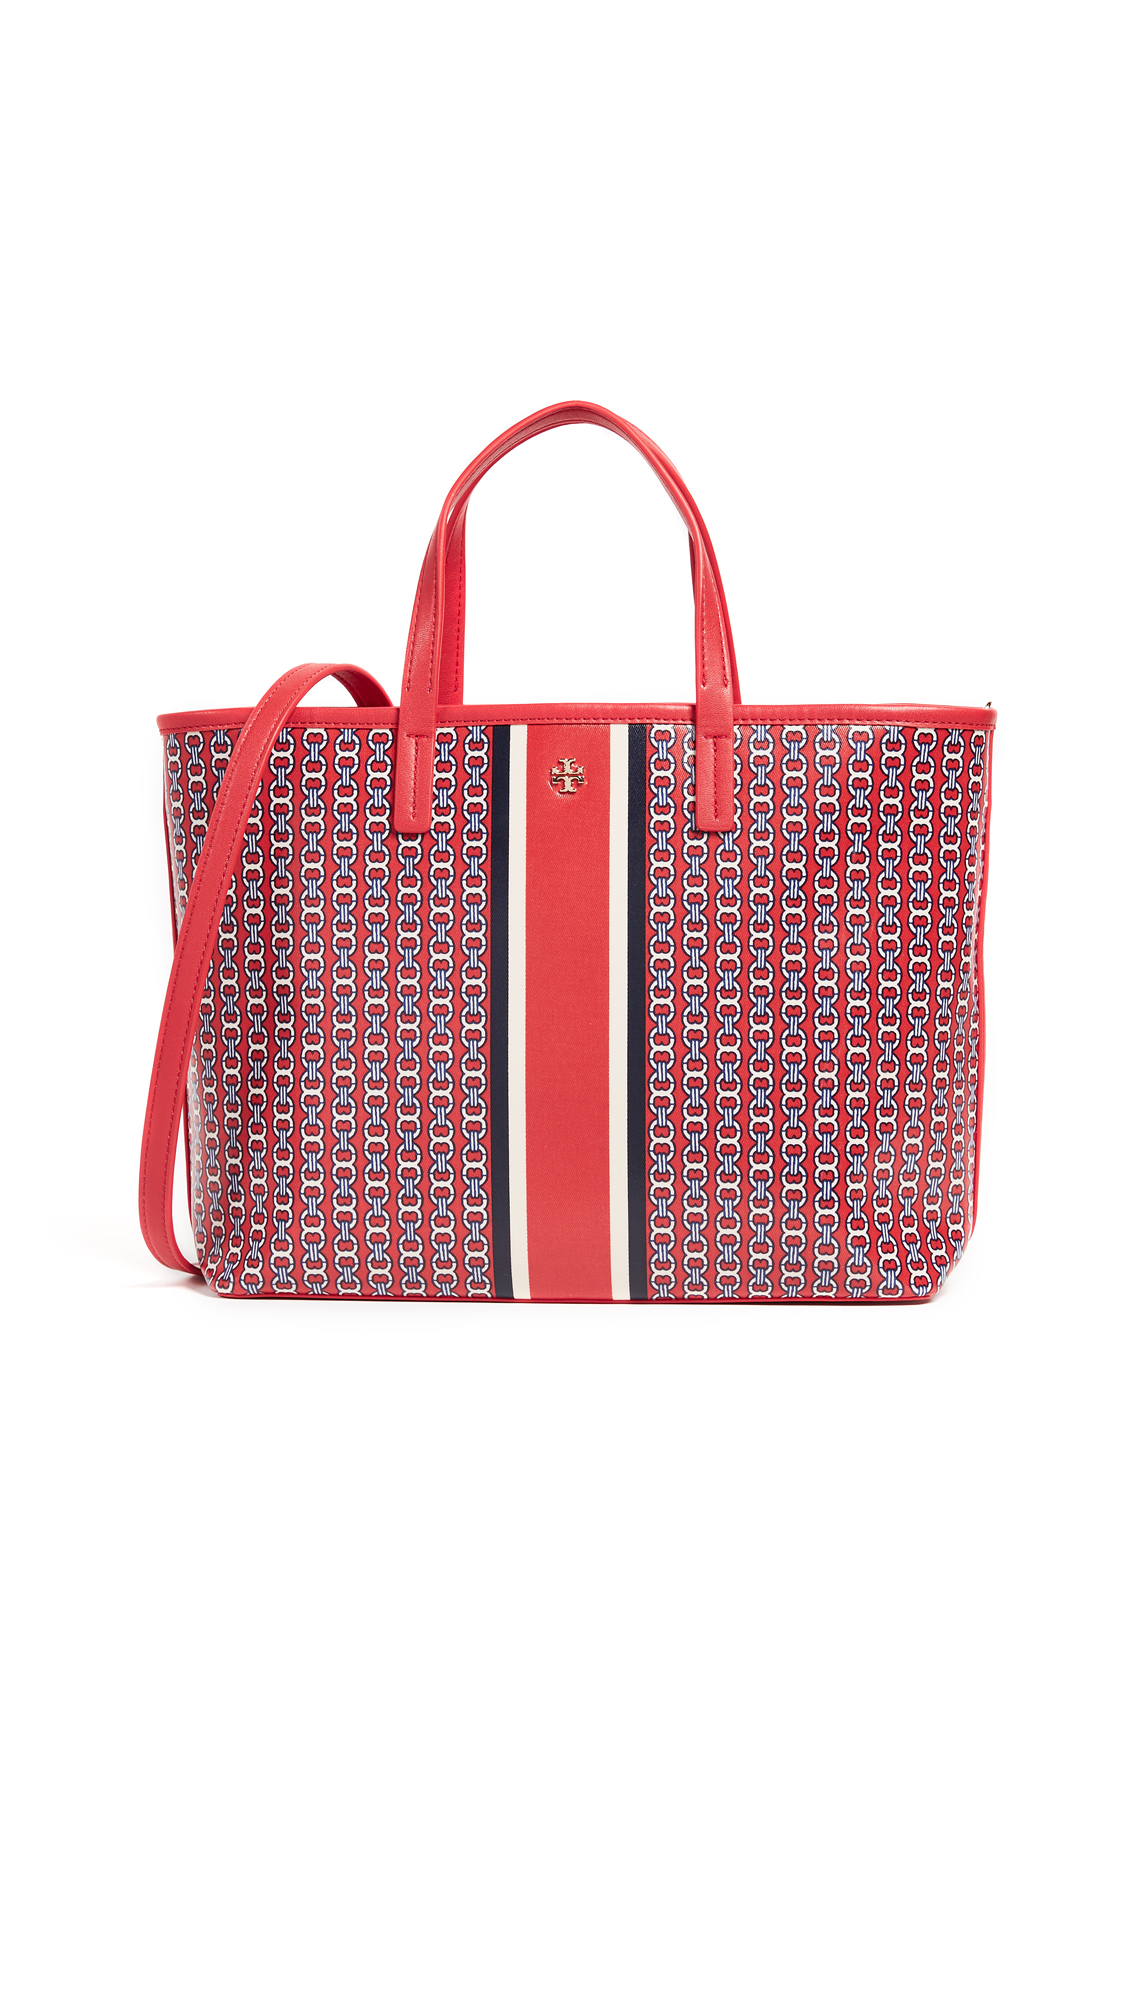 Tory Burch Gemini Link Small Tote - Exotic Red